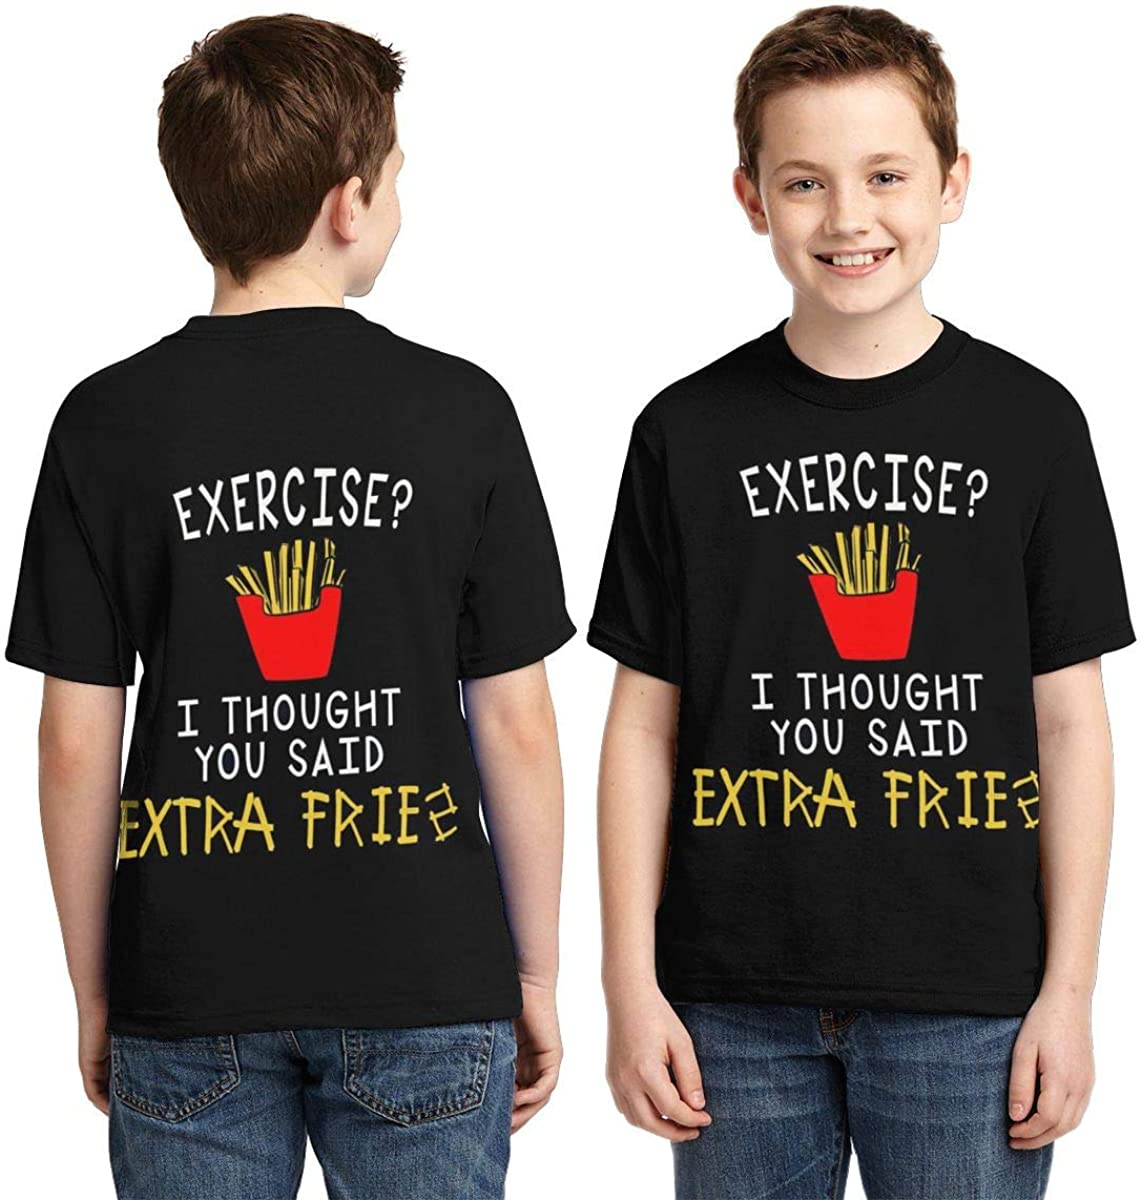 Traci StoneN Kid//Youth Exercise I Thought Said Extra Fries T-Shirts 3D Print Short Sleeve Graphics Tees for Boys